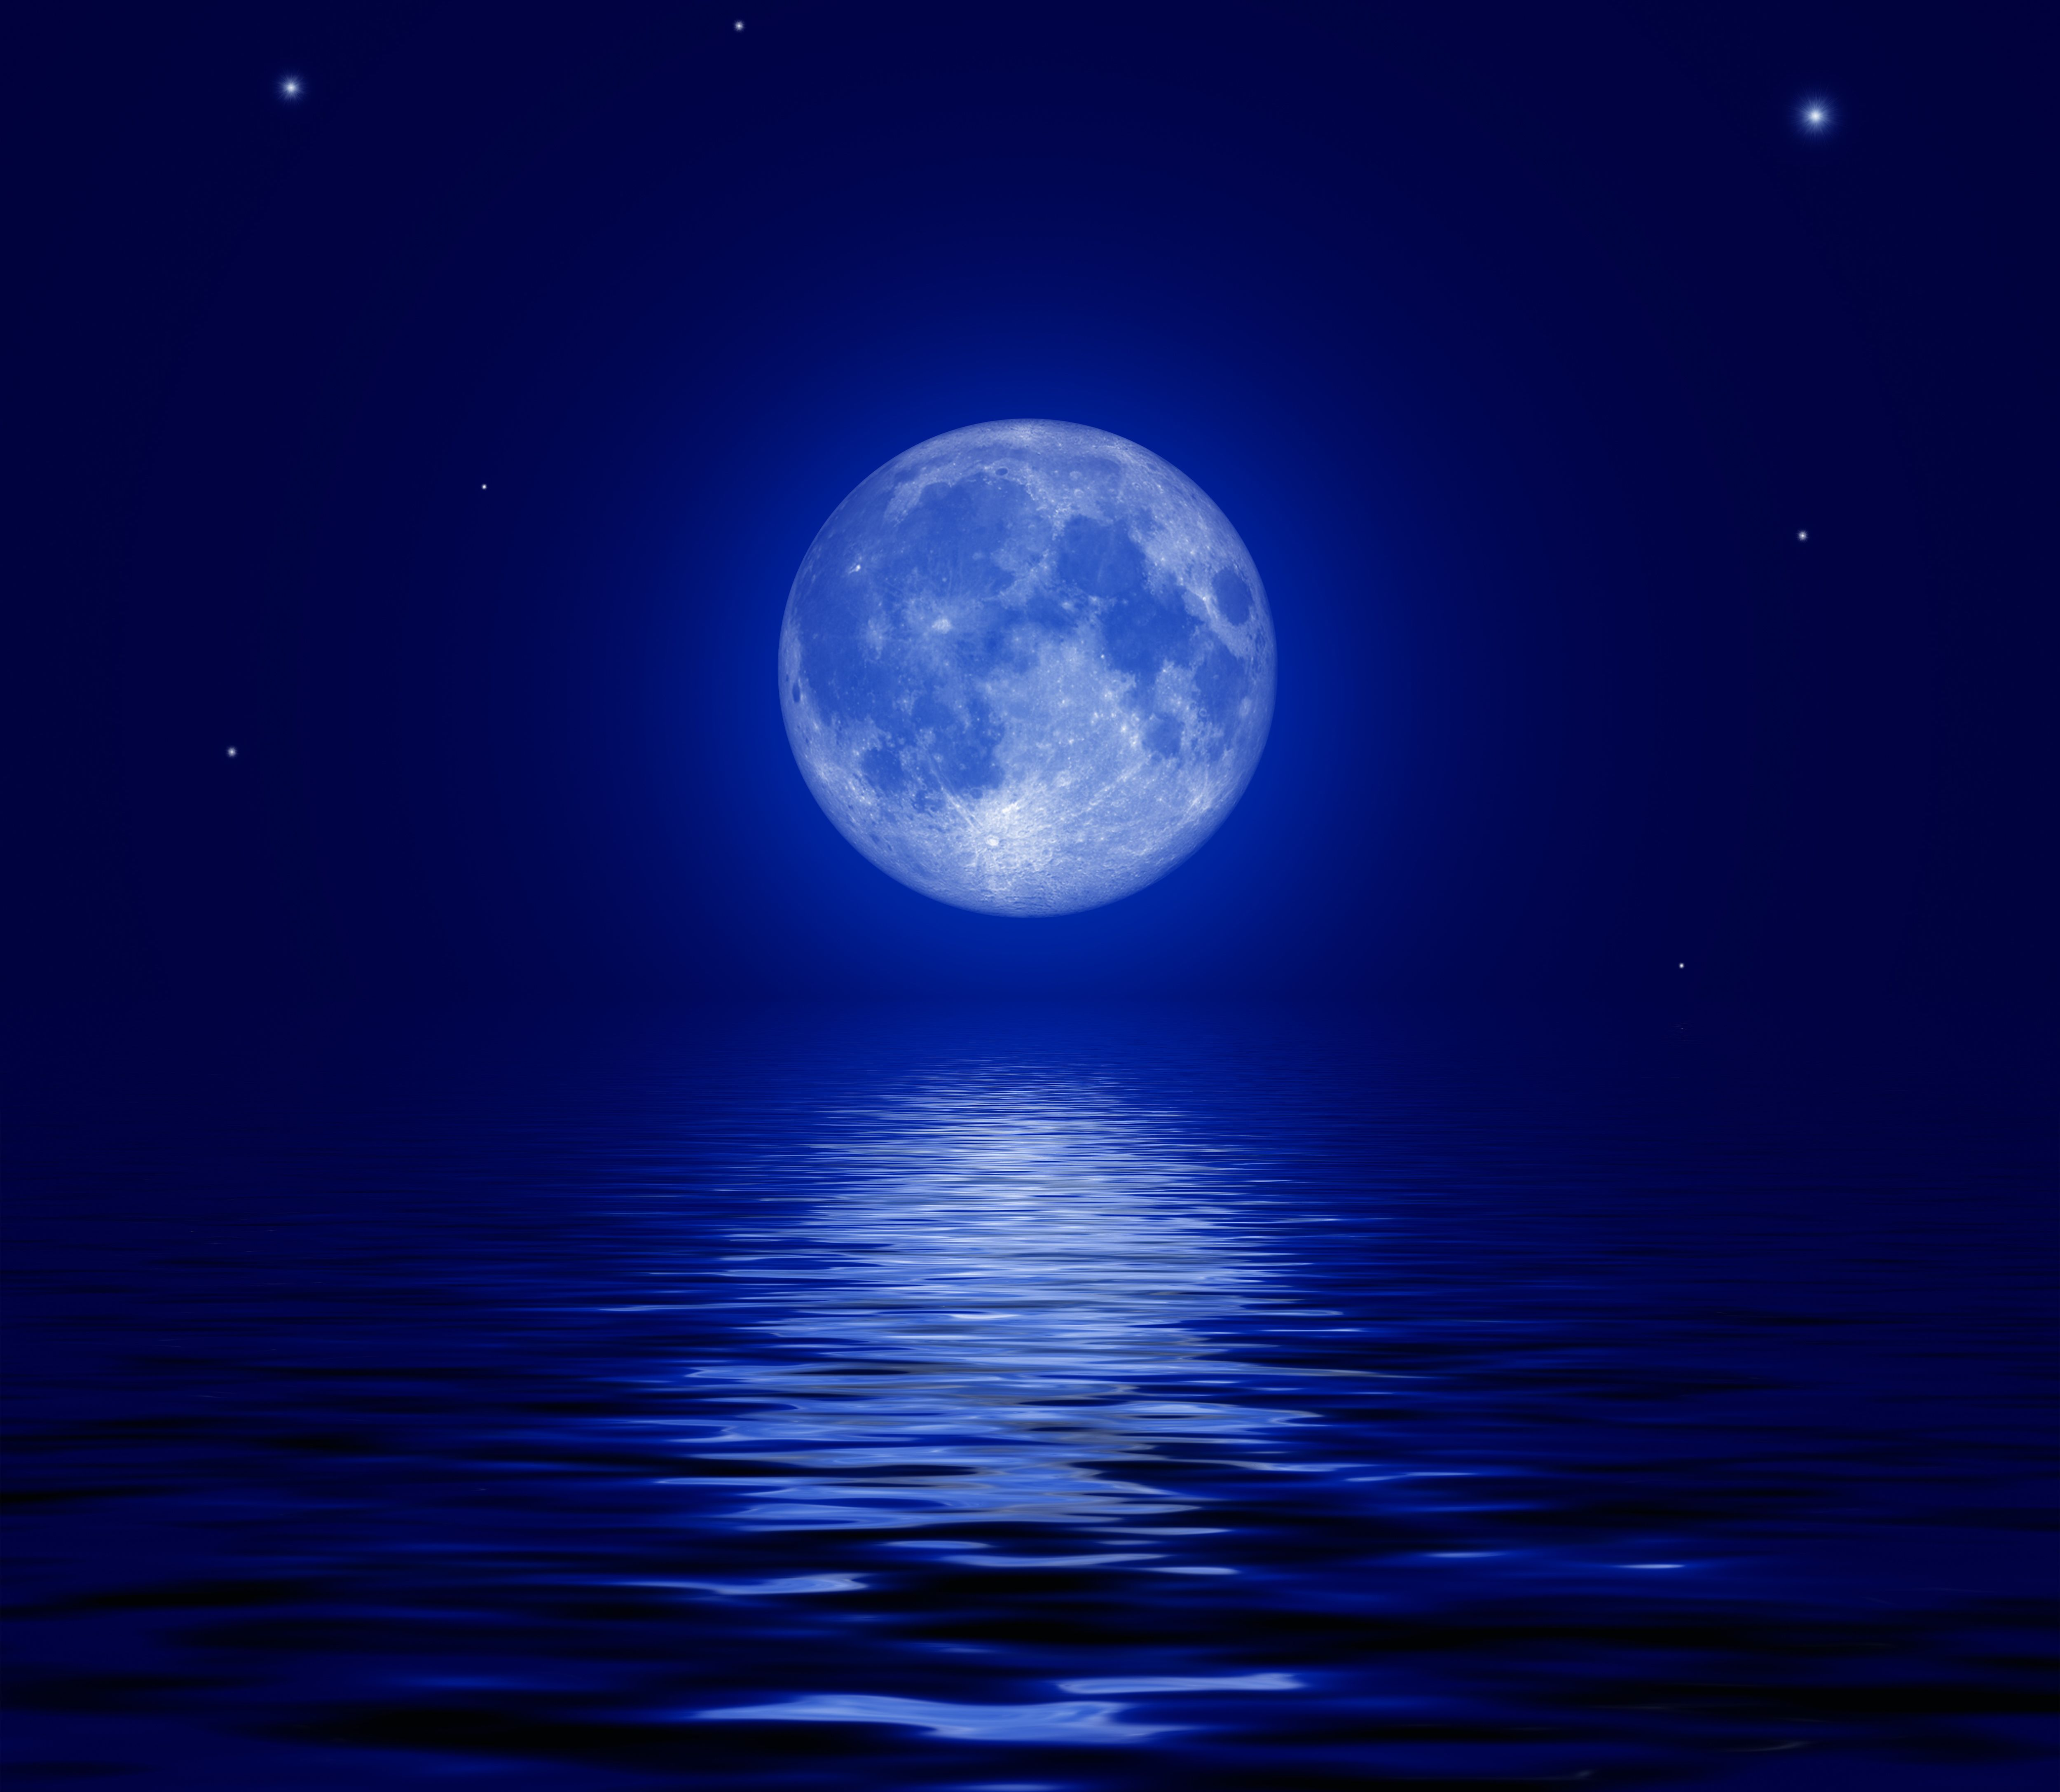 Full Moon In The Ocean Full Moon Over The Sea Computer Wallpapers Desktop Backgrounds Blue Moon Cool Backgrounds Blue Aesthetic